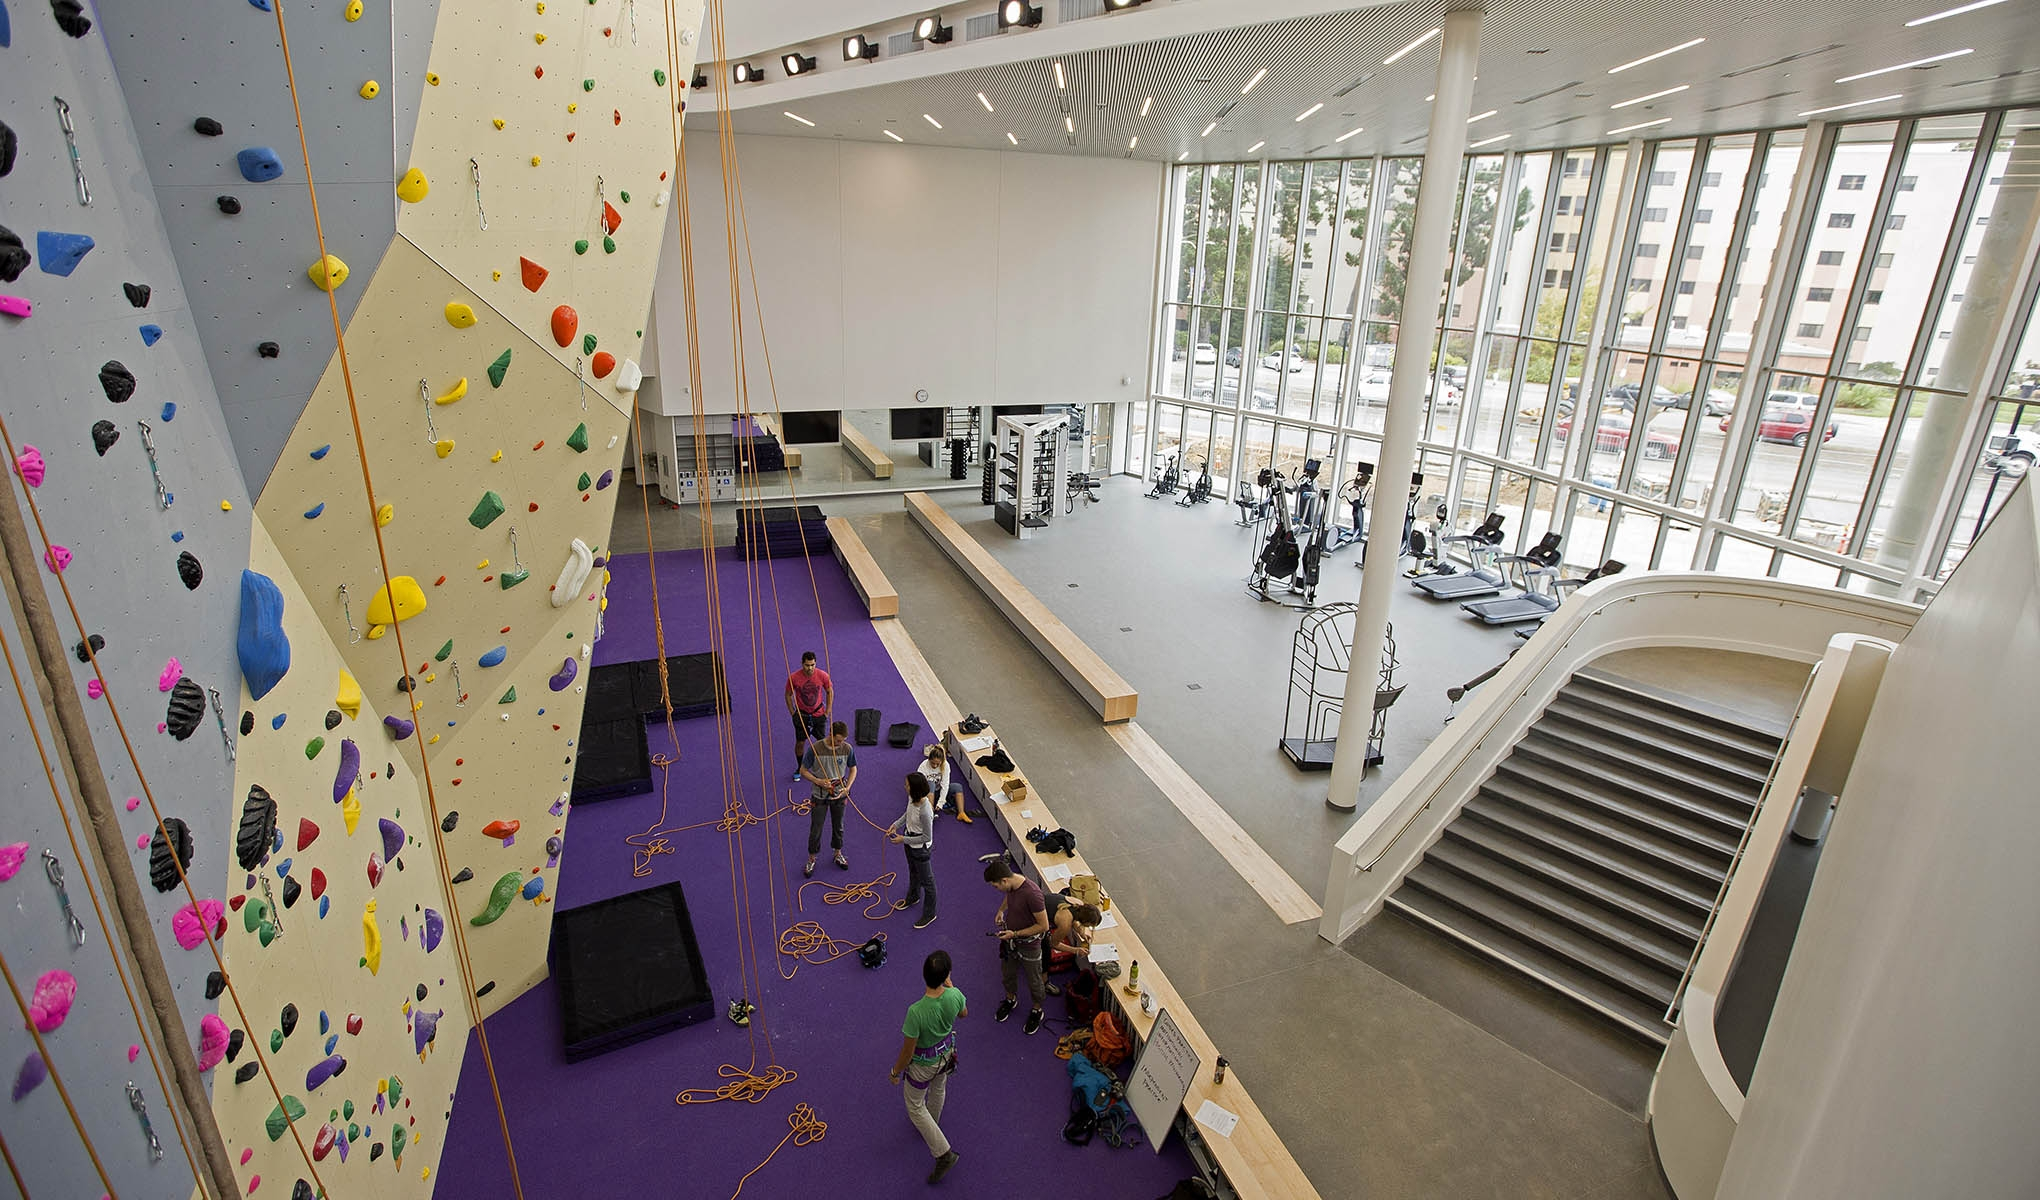 Aerial photo of a gym featuring a climbing wall and exercise equipment